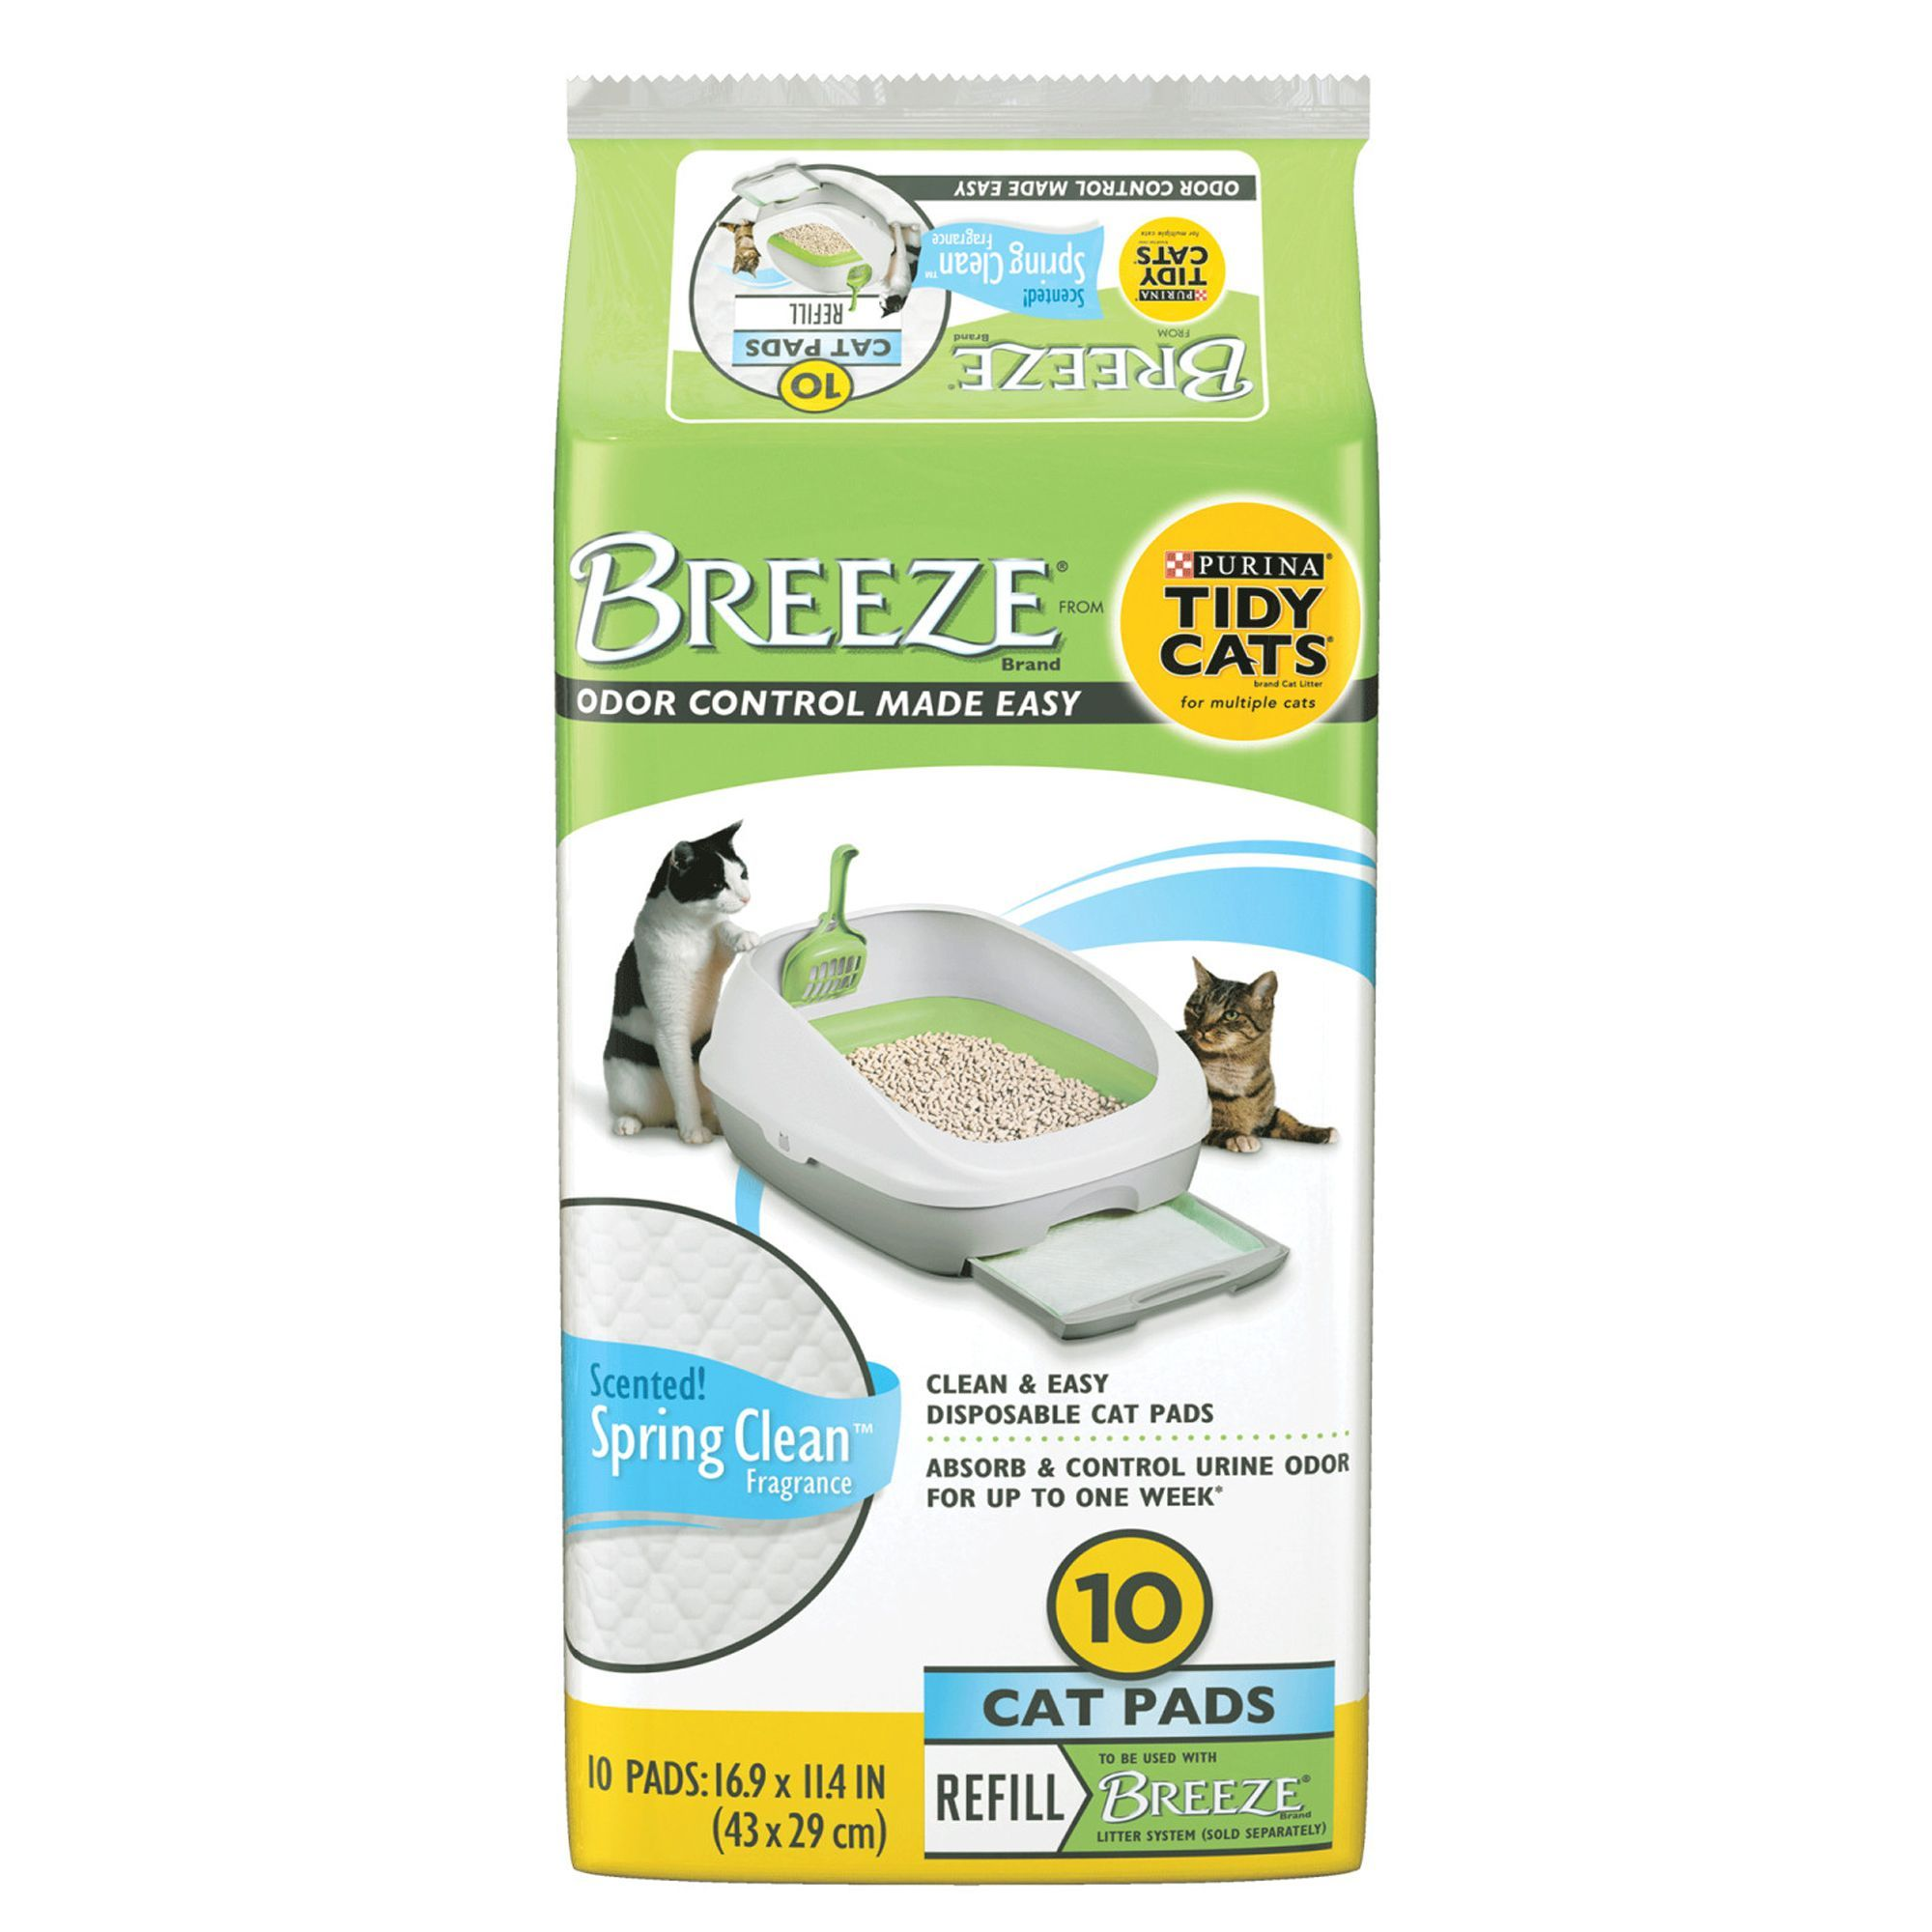 Purina Tidy Cats Breeze Scented Litter Box Pads in 2020